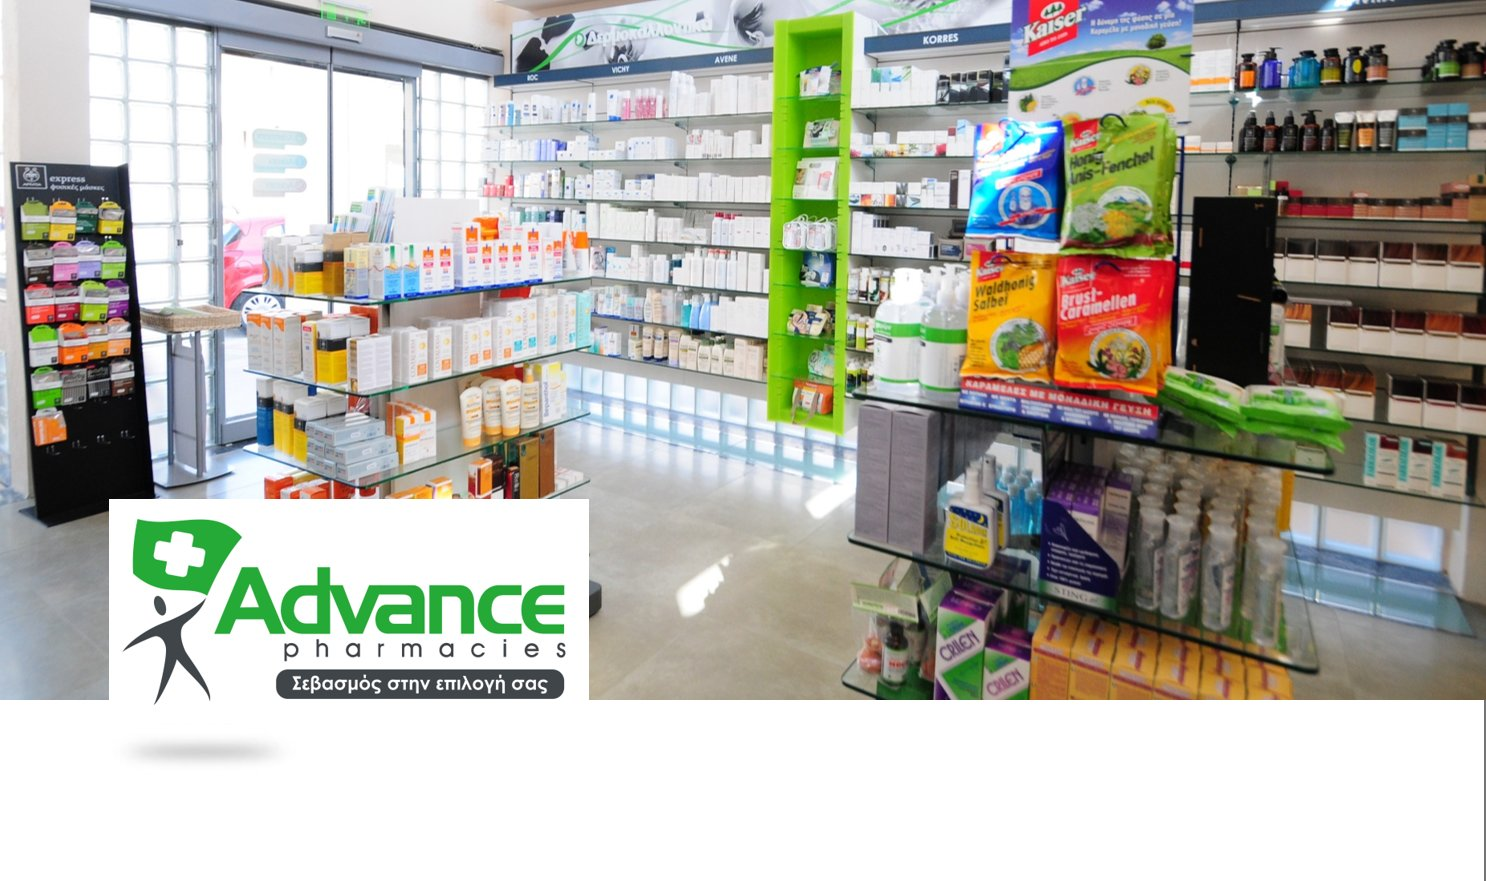 Advance Pharmacies